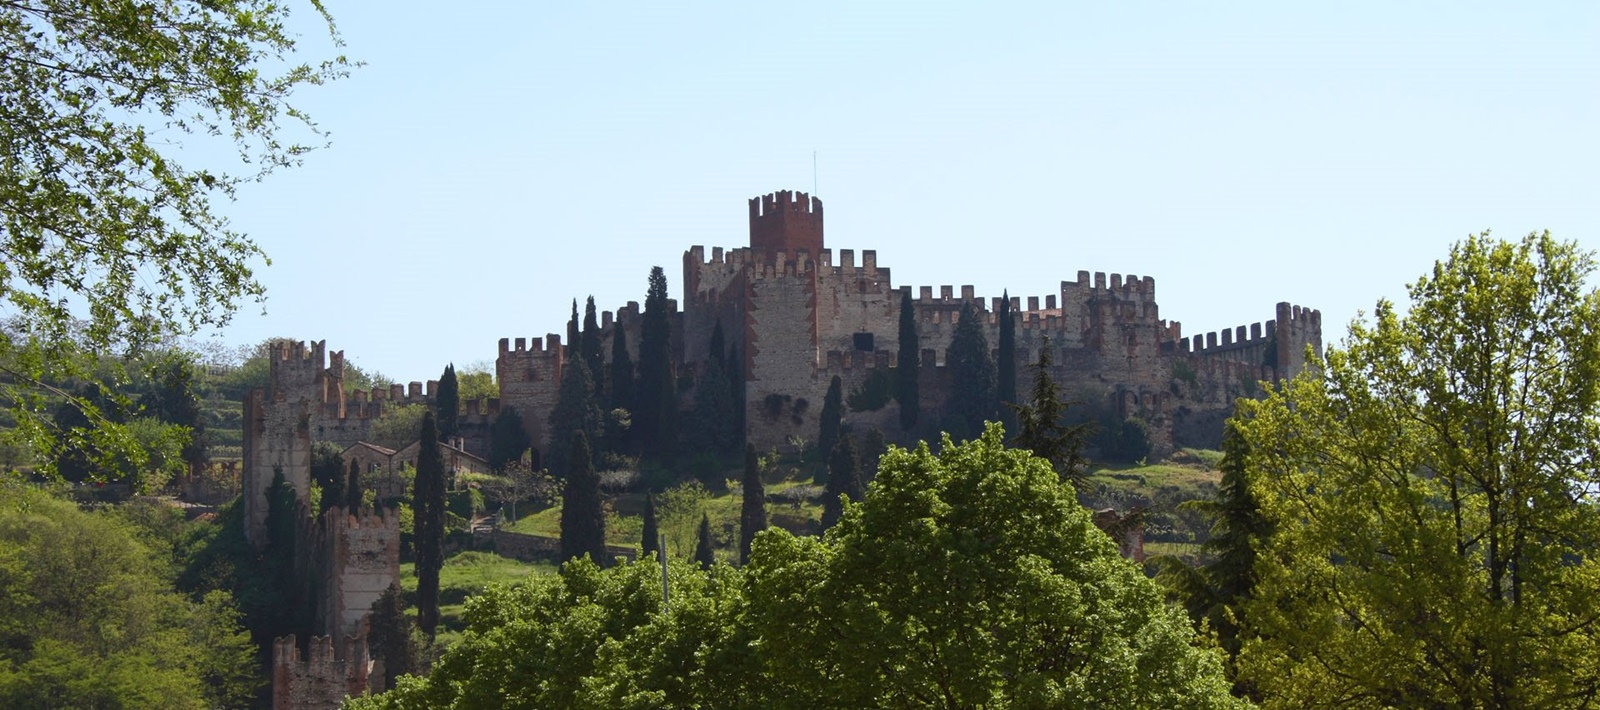 Welcome to the official website of Soave Castle